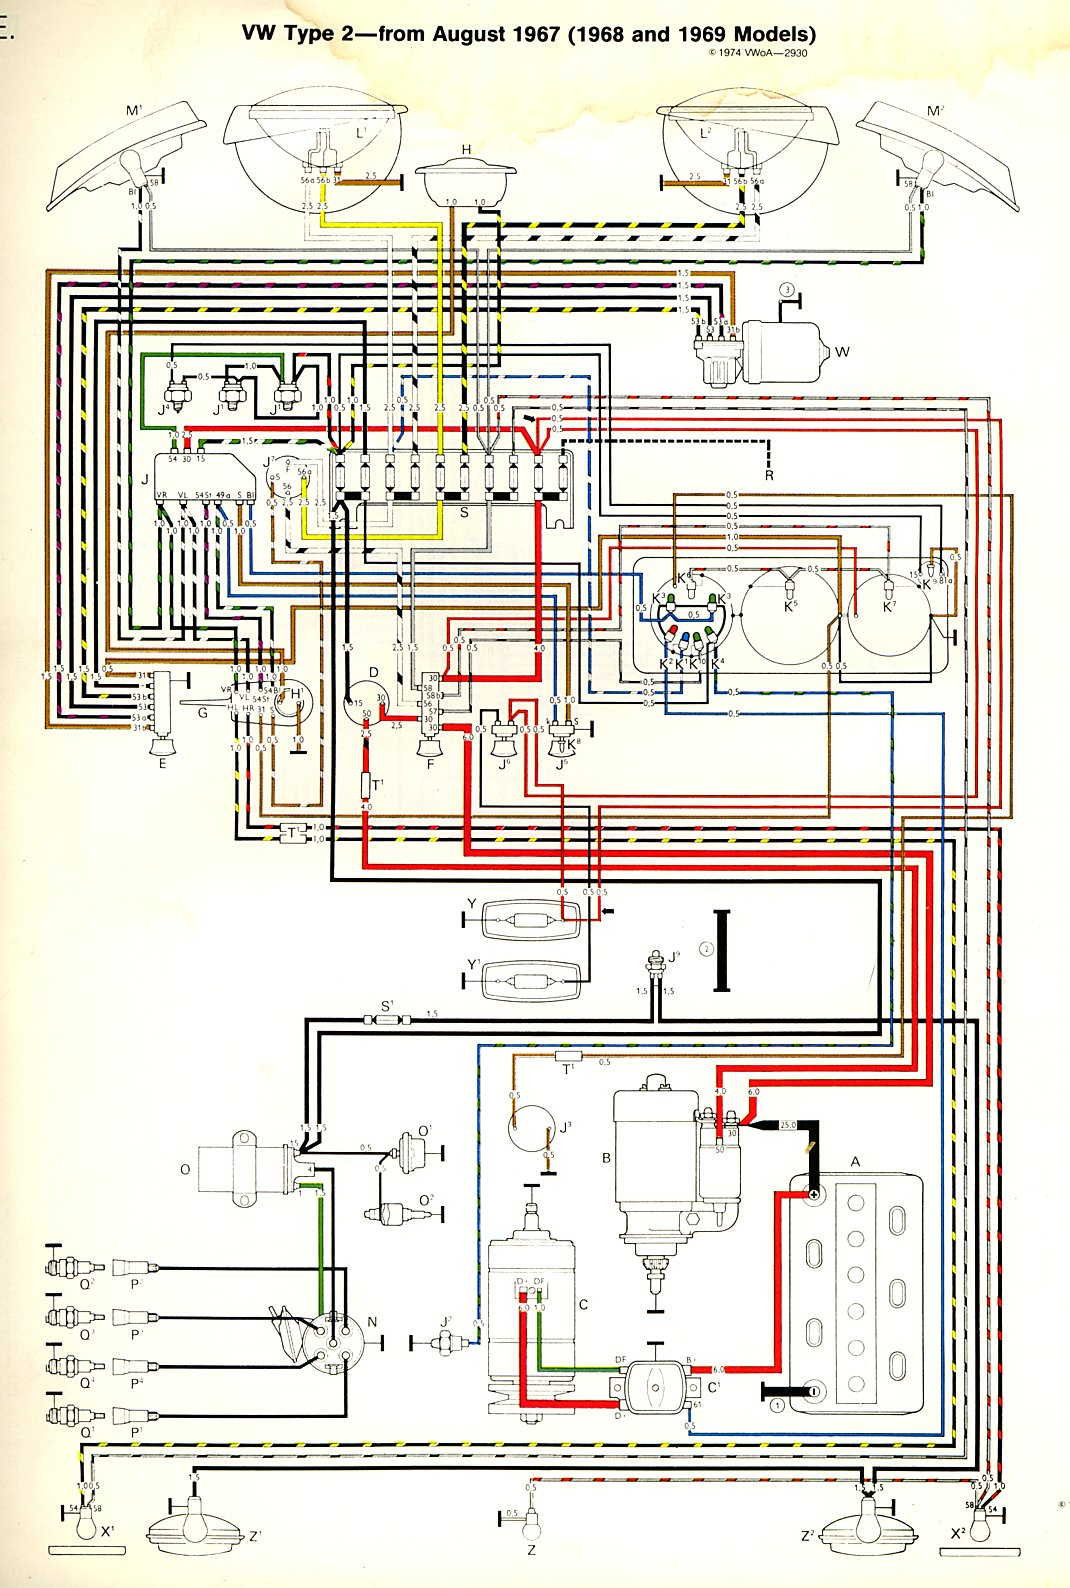 baybus_6869a 1968 69 bus wiring diagram thegoldenbug com Volkswagen Type 2 Wiring Harness at alyssarenee.co